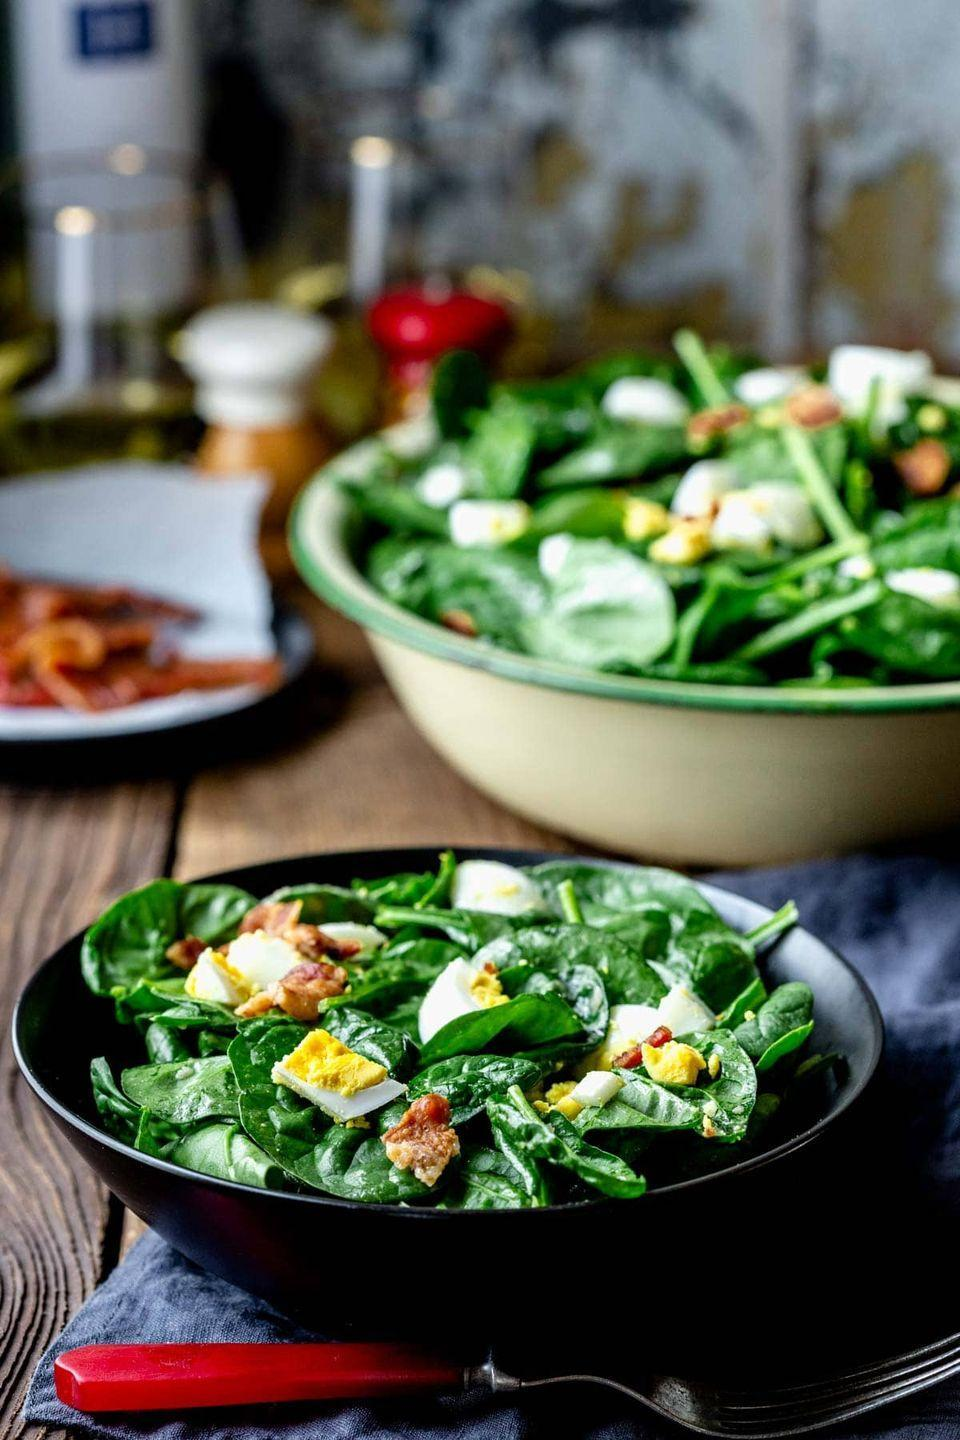 """<p>You can make this salad up to a day ahead; just keep the salad dressing in a separate jar and toss when you're ready to serve.</p><p><strong>Get the recipe at <a href=""""https://www.healthyseasonalrecipes.com/spinach-salad-with-bacon-eggs/"""" rel=""""nofollow noopener"""" target=""""_blank"""" data-ylk=""""slk:Healthy Seasonal Recipes"""" class=""""link rapid-noclick-resp"""">Healthy Seasonal Recipes</a>. </strong></p>"""